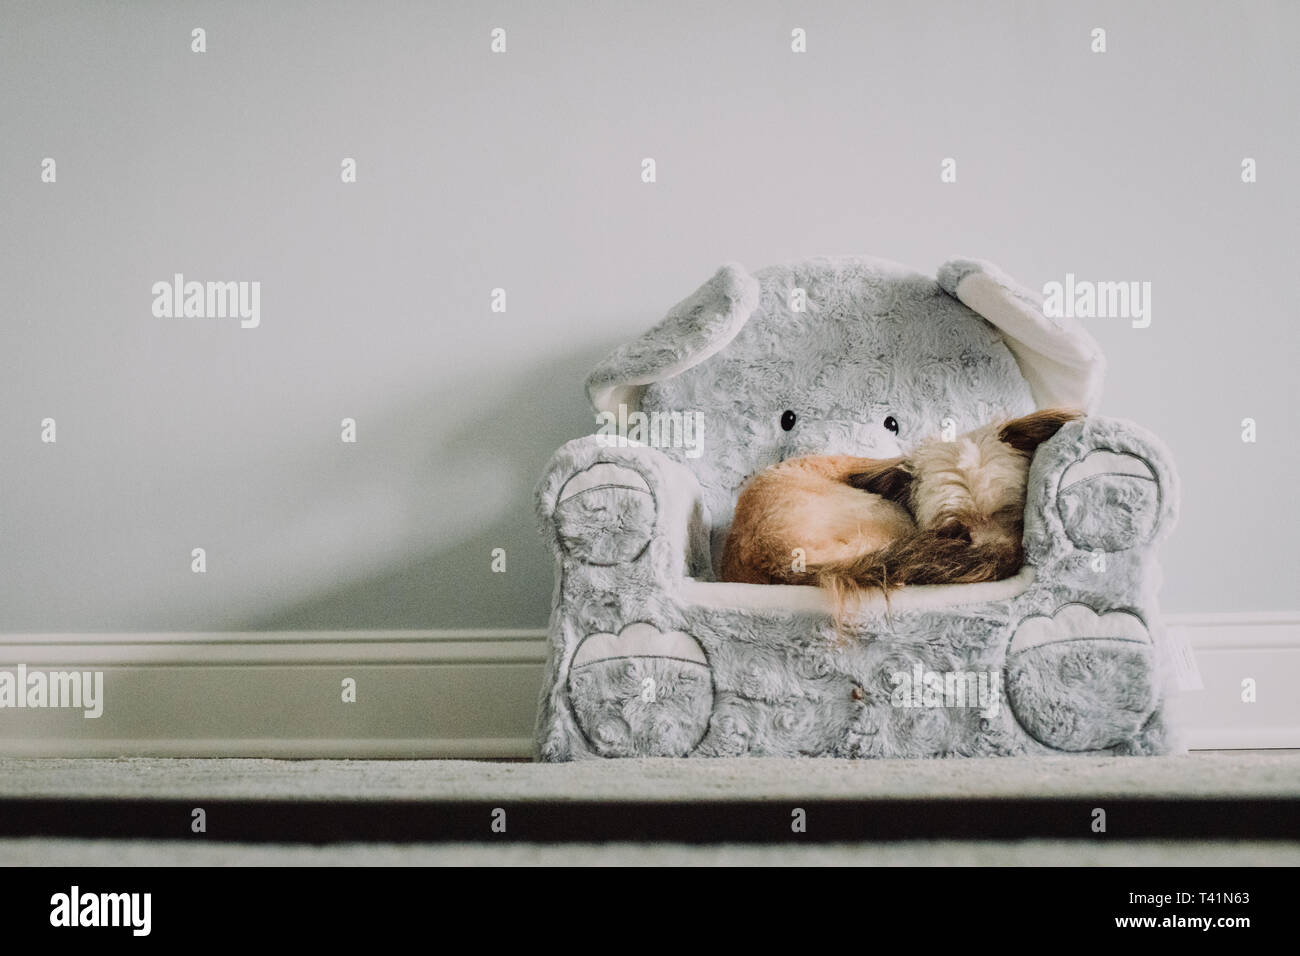 Little dog sleeping in chair - Stock Image